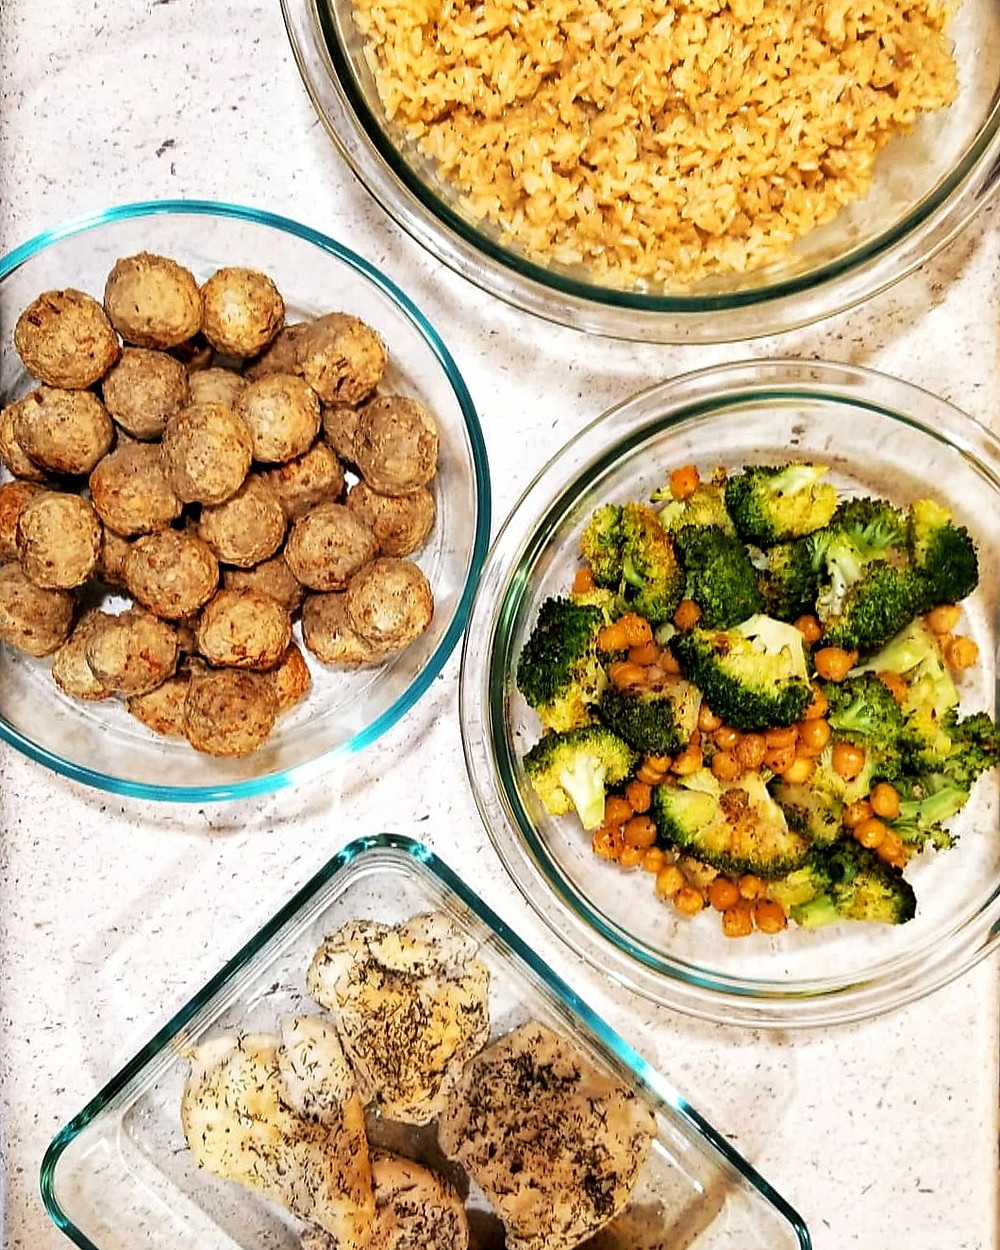 Image of meal prep containers containing rice, meatballs, mixed vegetables, and chicken.